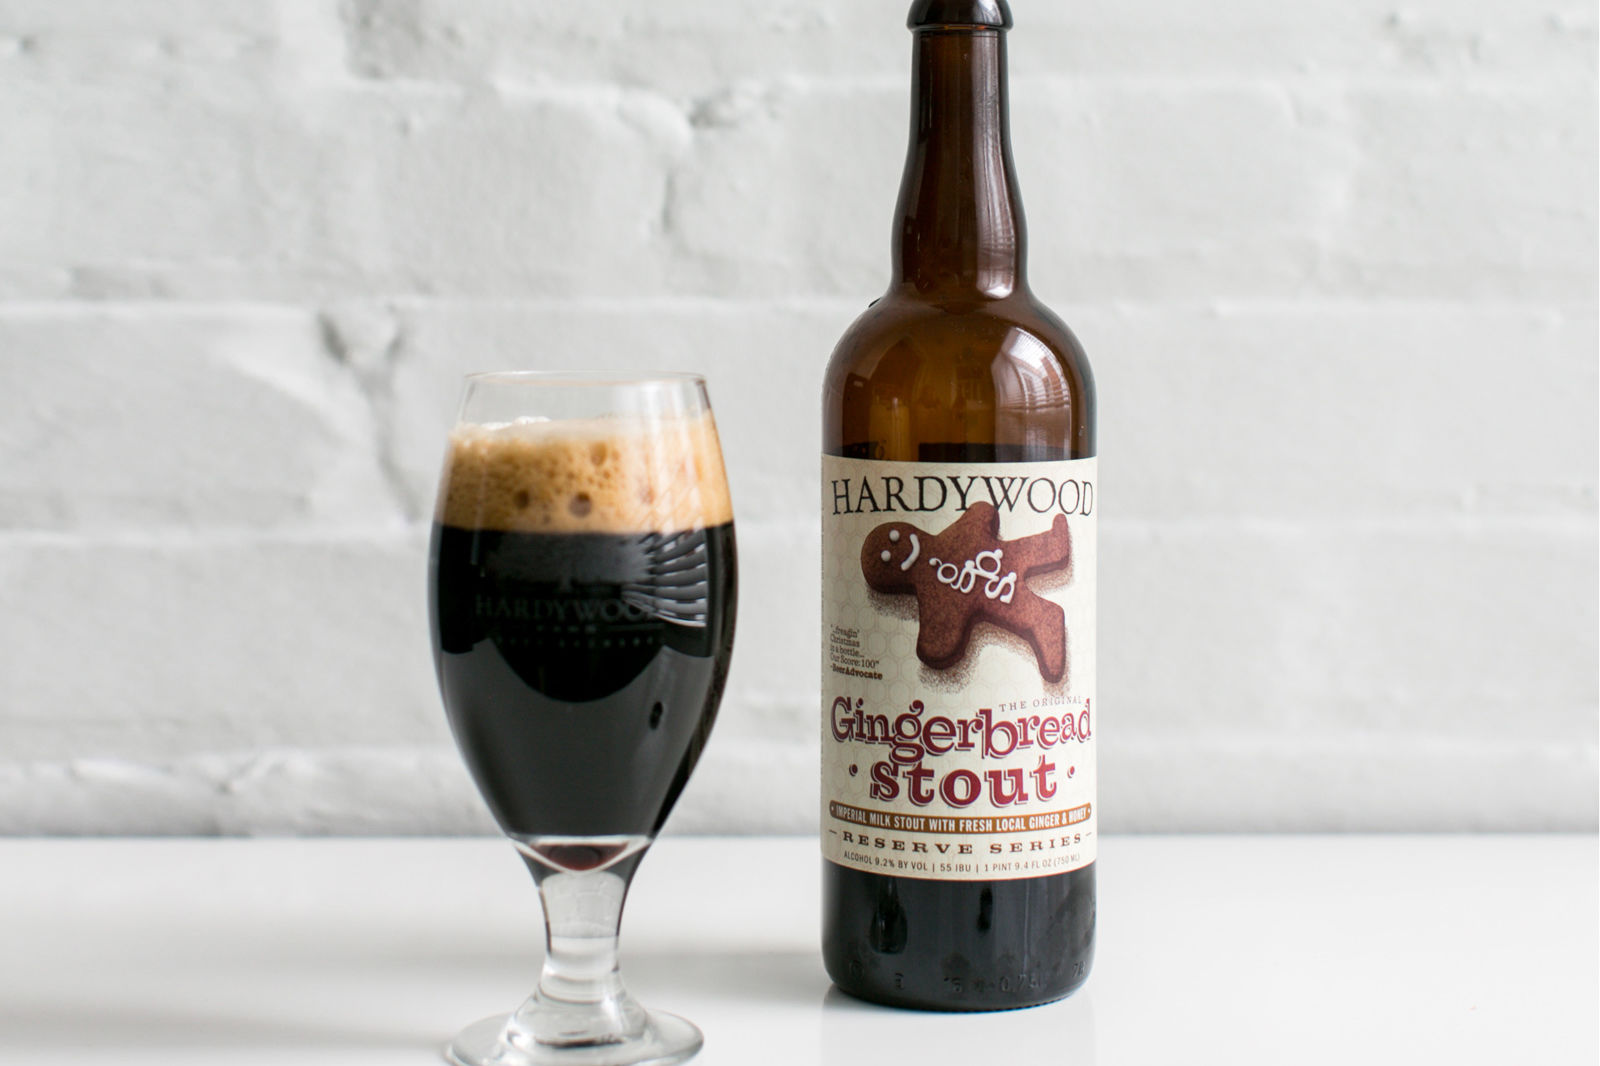 How a Christmas Beer Built a Brewery: The Story of Hardywood's Gingerbread Stout